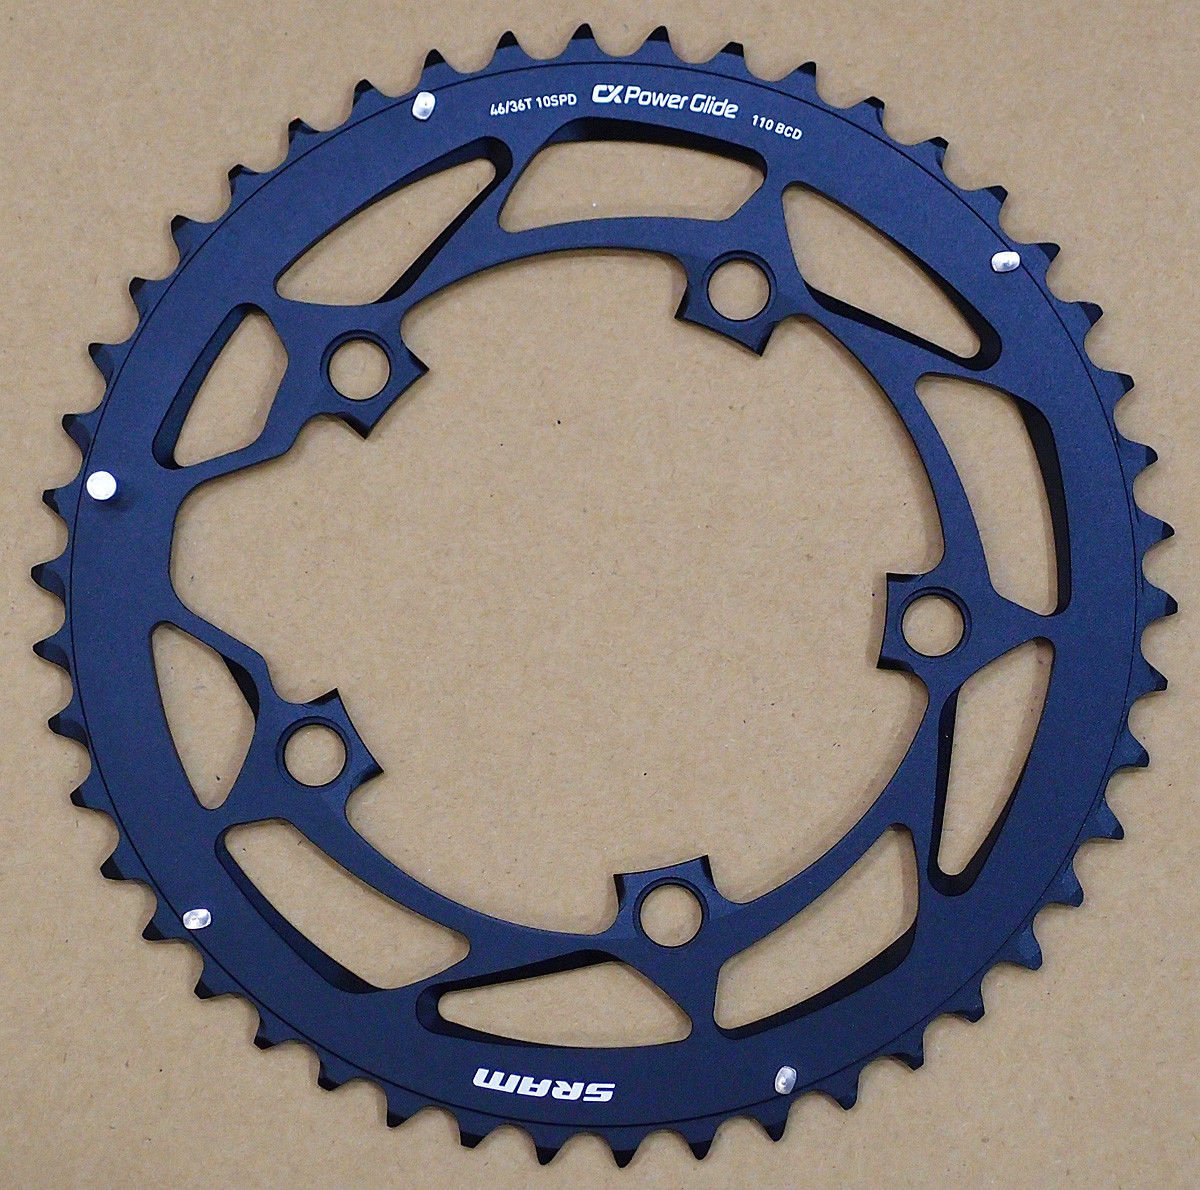 Звезда Sram POWERGLIDE CRING ROAD 46T 10S 110 AL4BLK S-PIN BB30 3 POWERGLIDE CRING ROAD 11.6215.197.190